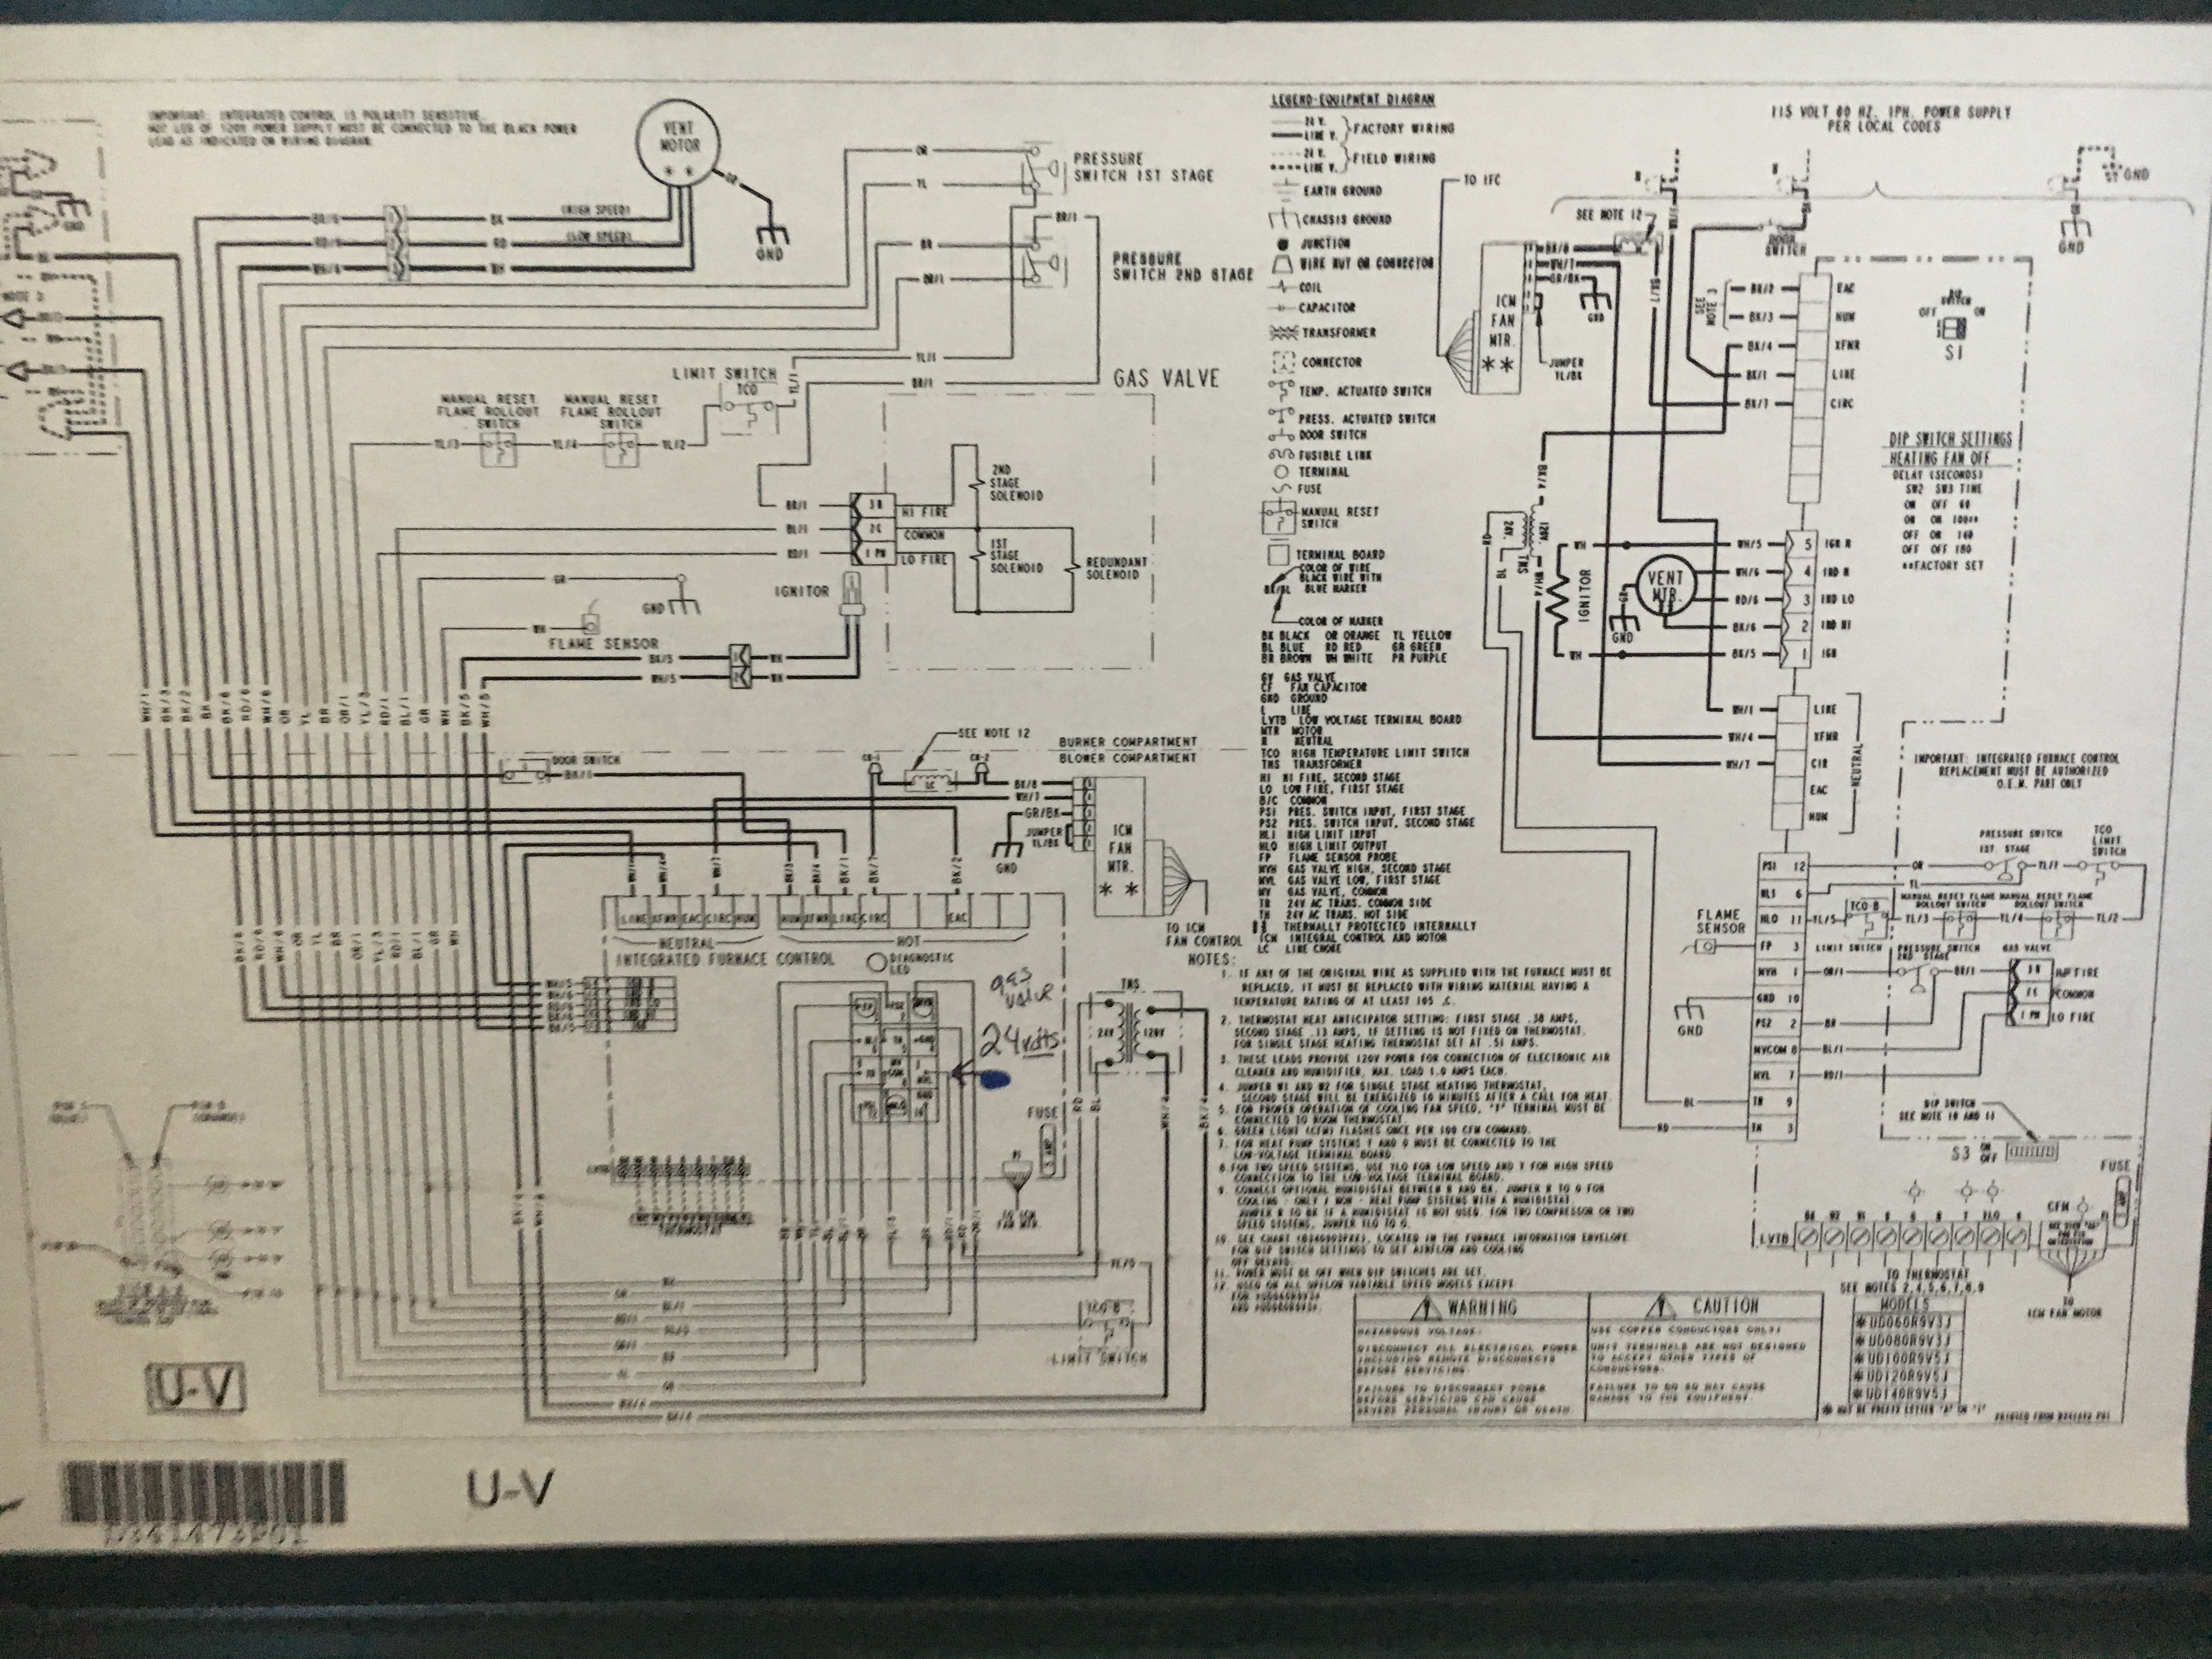 Furnace Turns Off After Running For A Minute Or Wont Turn On At This Is The Wiring Diagram I Goti Did Not Wire It Like All Power Outage Couple Days Ago Seems To Have